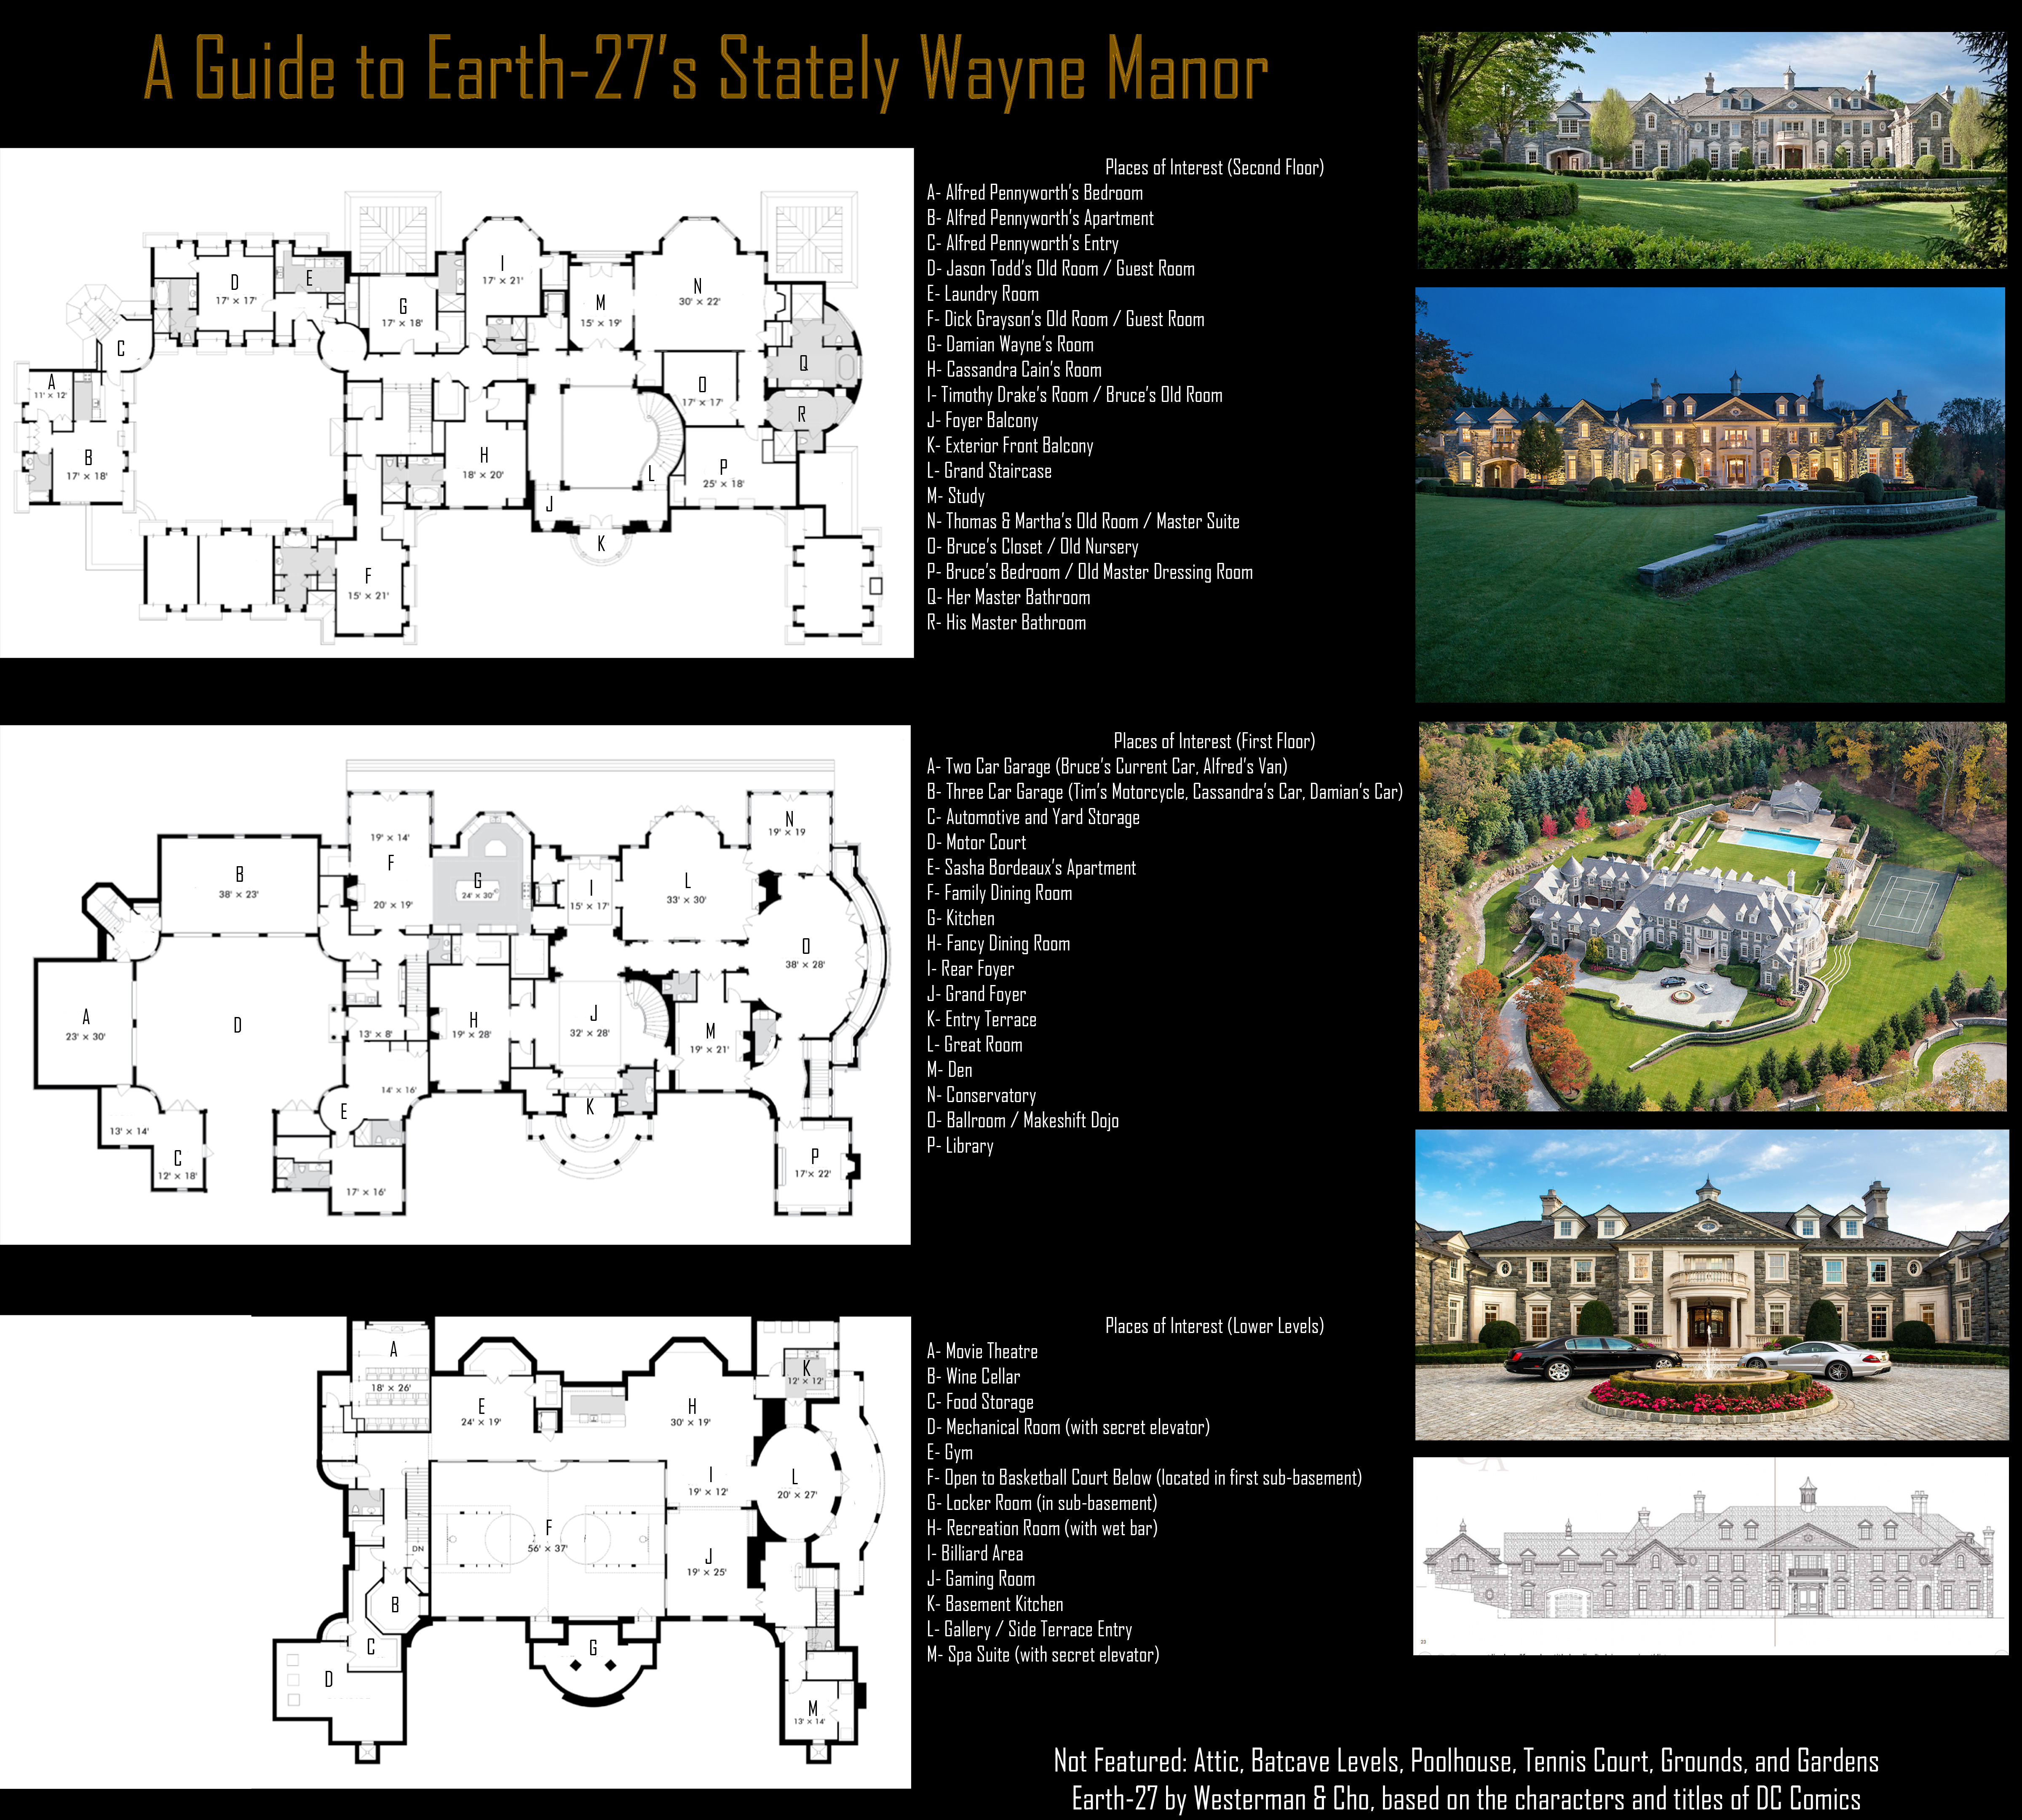 Golf Clubhouse DWG as well Solar Carport also 537ec92dc07a8021210002ab Sunset Park Material Recovery Facility Selldorf Architects Site Plan as well morelllabellefuneralhome as well Maruti Suzuki All Set To Launch Swift Glory Limited Sports Edition 101554. on large parking designs